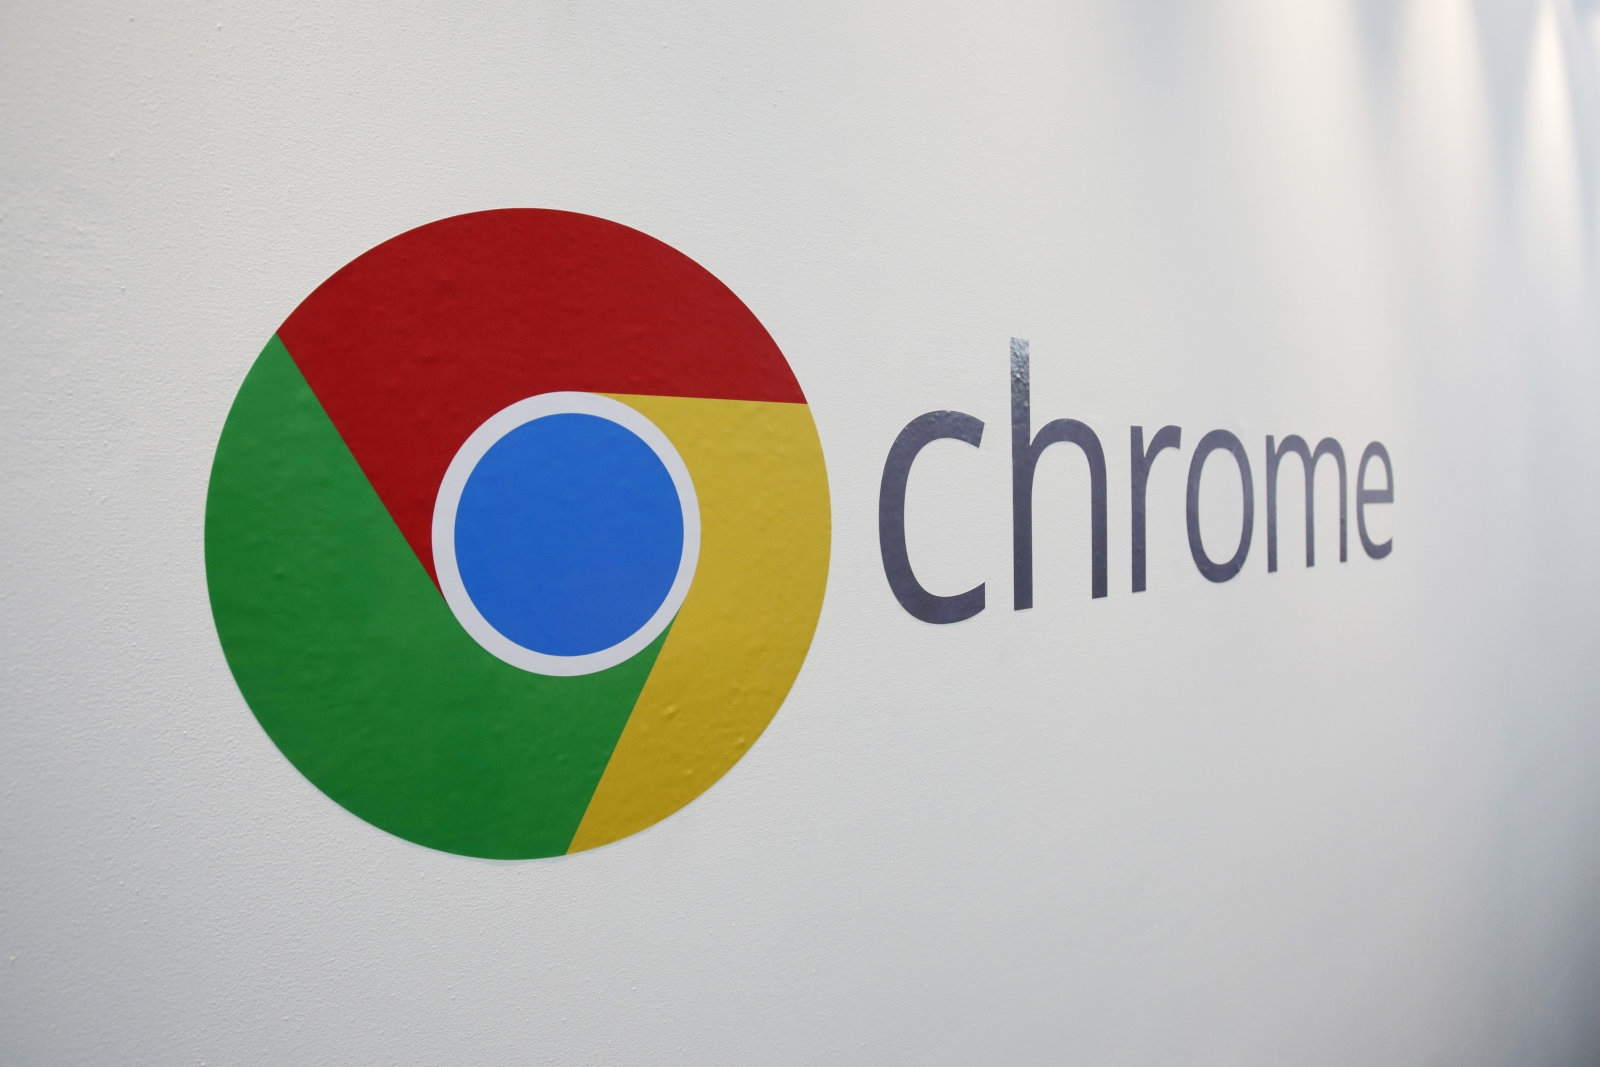 Chrome exploit uses a fake address bar for phishing attacks | DeviceDaily.com